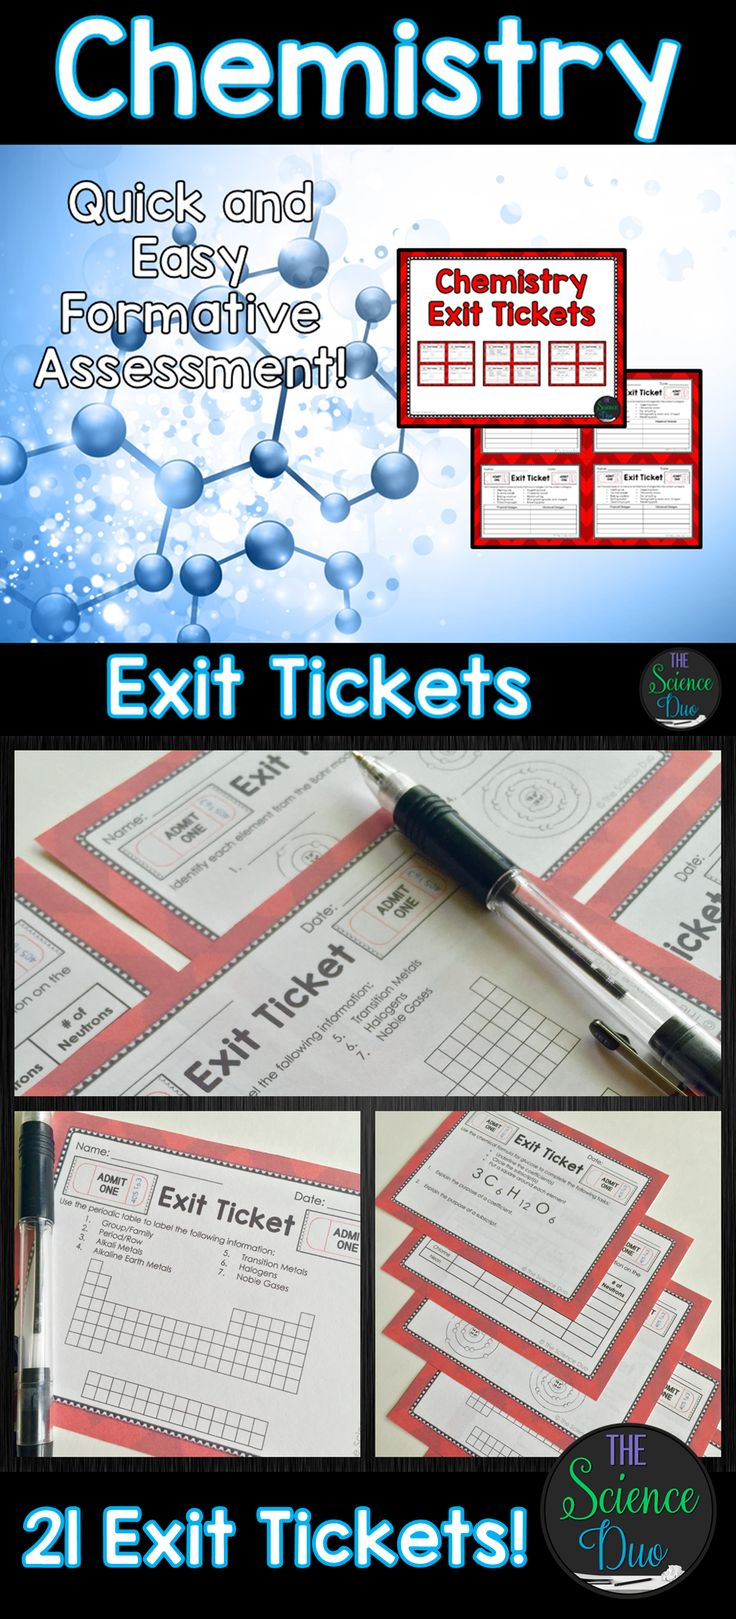 Chemistry Exit Tickets (Exit Slips) are the perfect formative assessment activity for your students. They are quick, easy to use, and data driven. This resource contains 21 different exit ticket activities (4 per page) covering a large variety of chemistry concepts